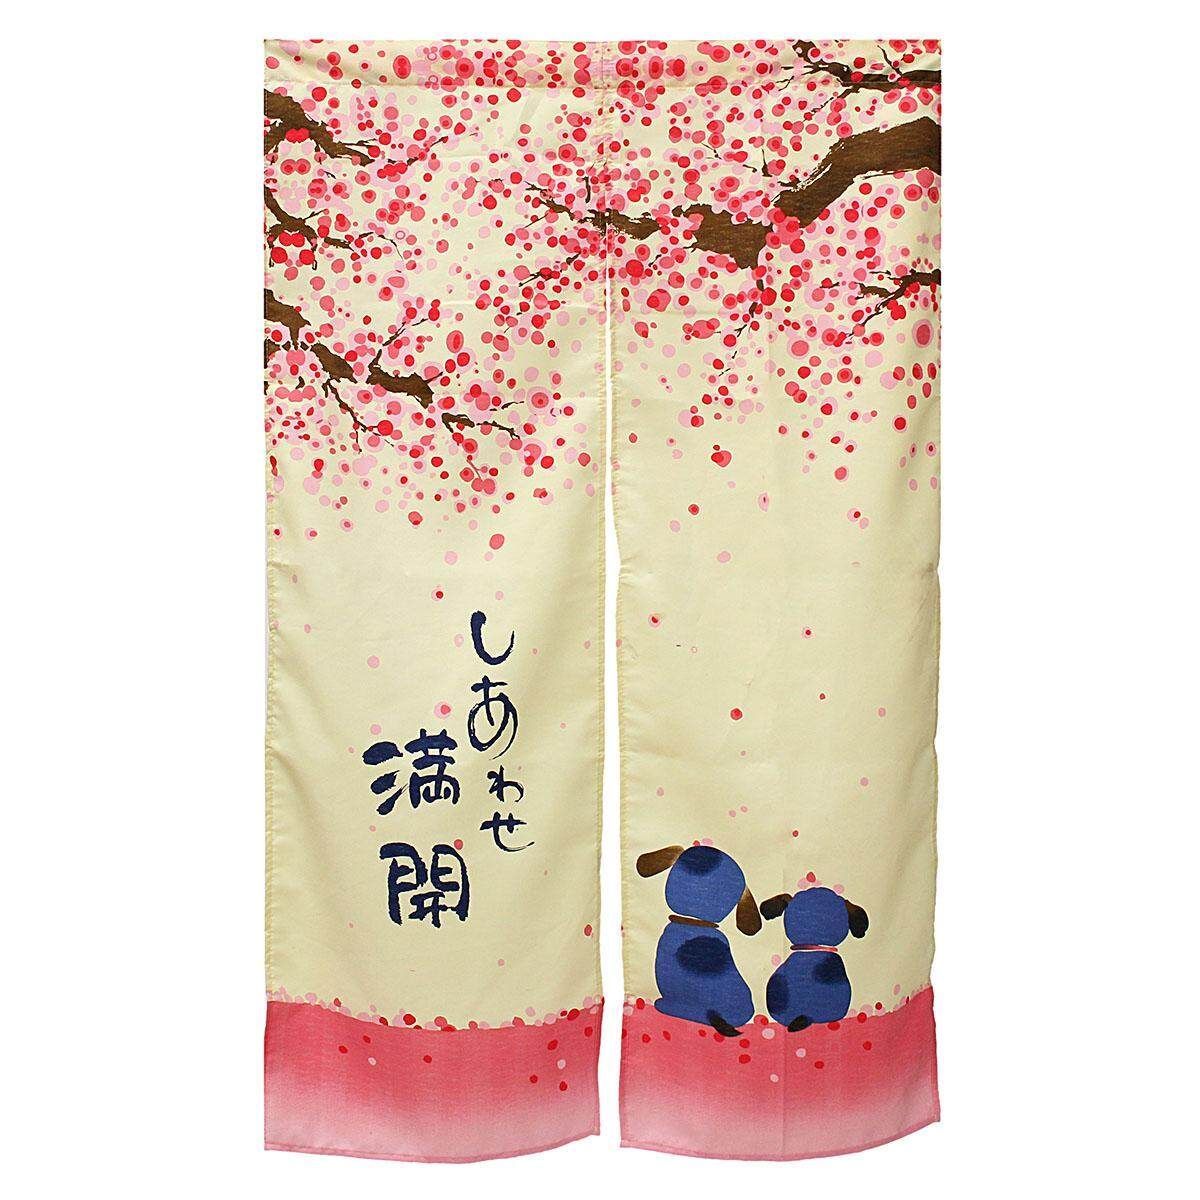 Romantic Blossom Cherry Sakura And Little Dog Japanese Noren Doorway Curtain By Glimmer.